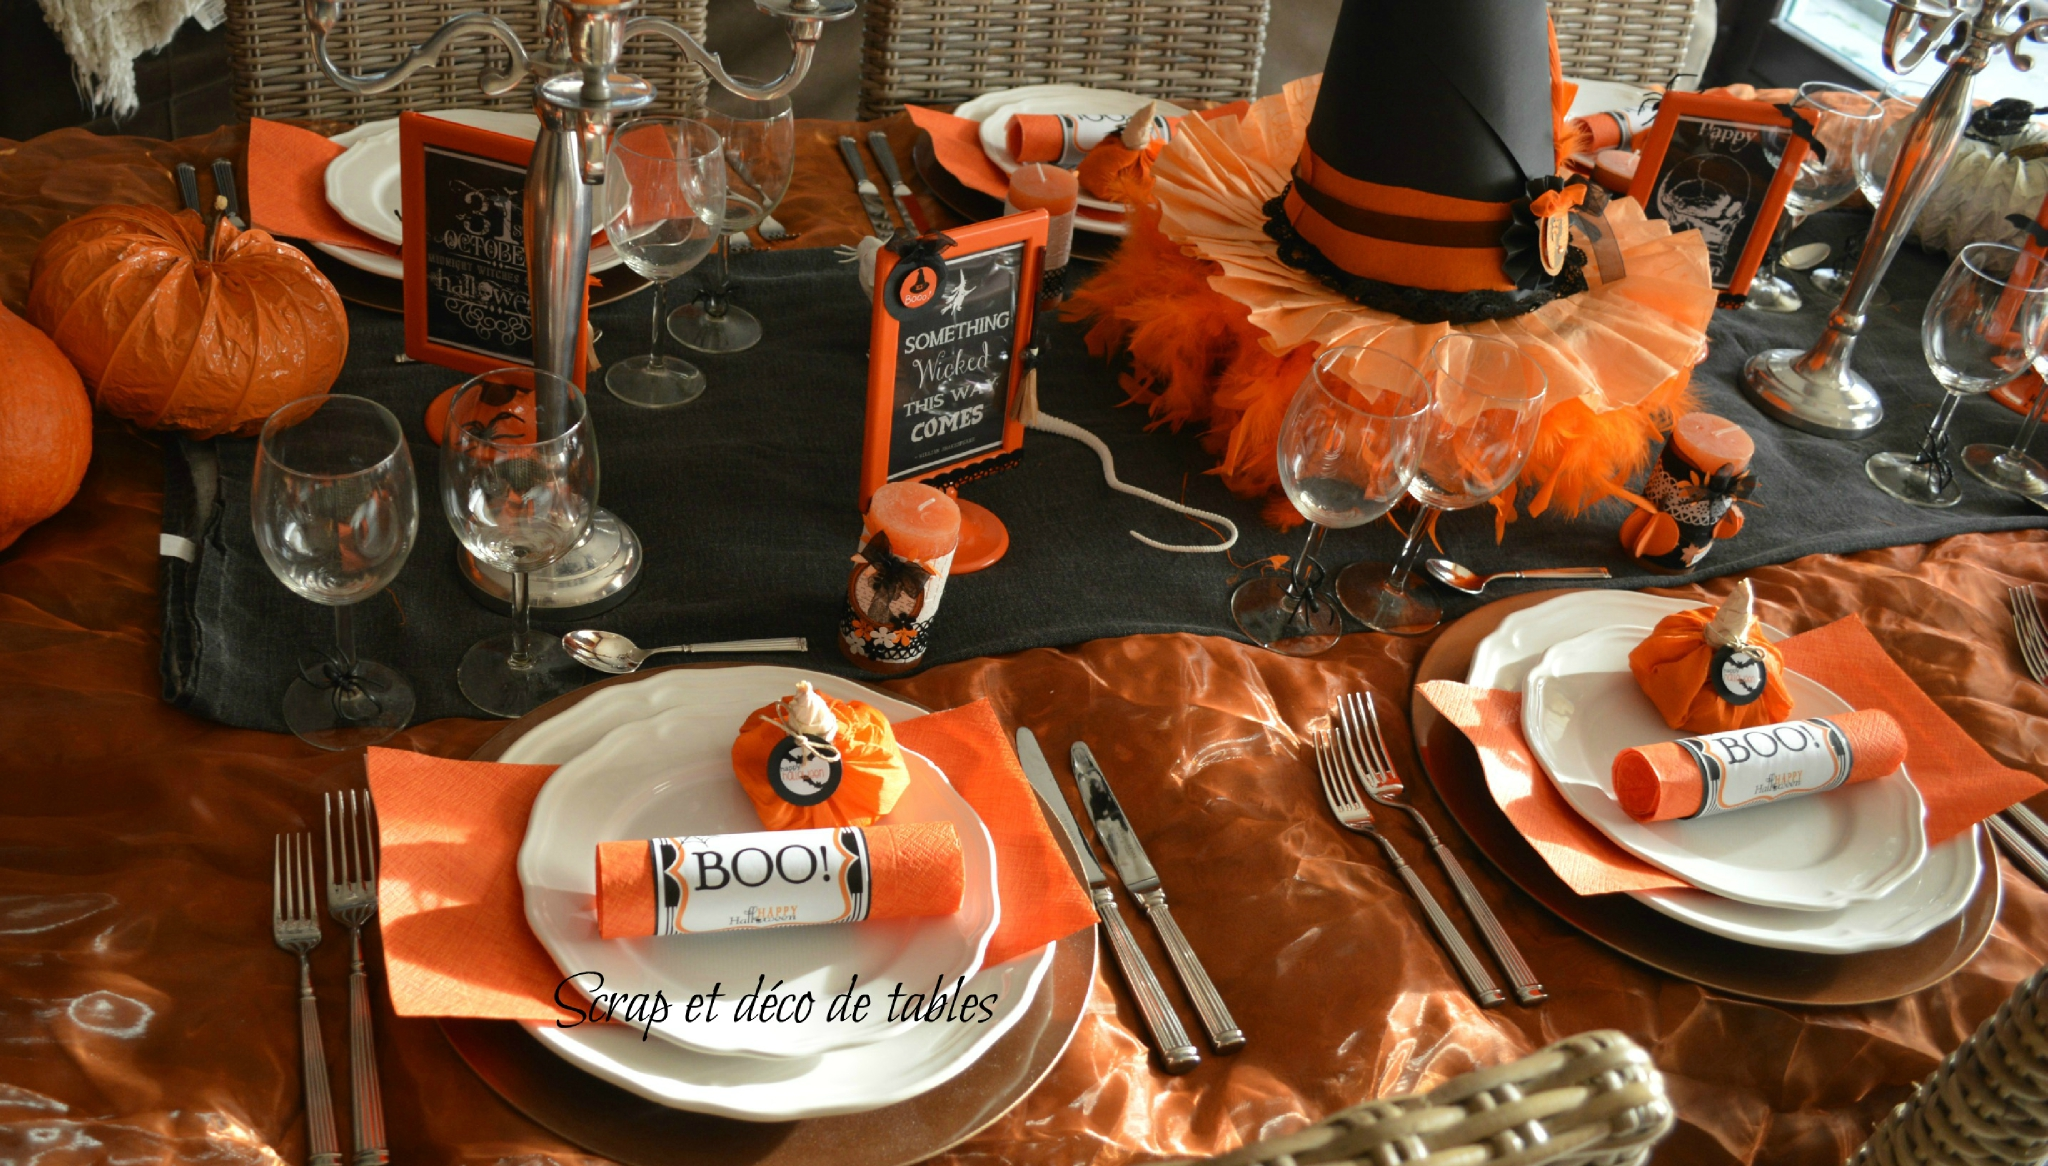 deco de table theme halloween julie bas. Black Bedroom Furniture Sets. Home Design Ideas